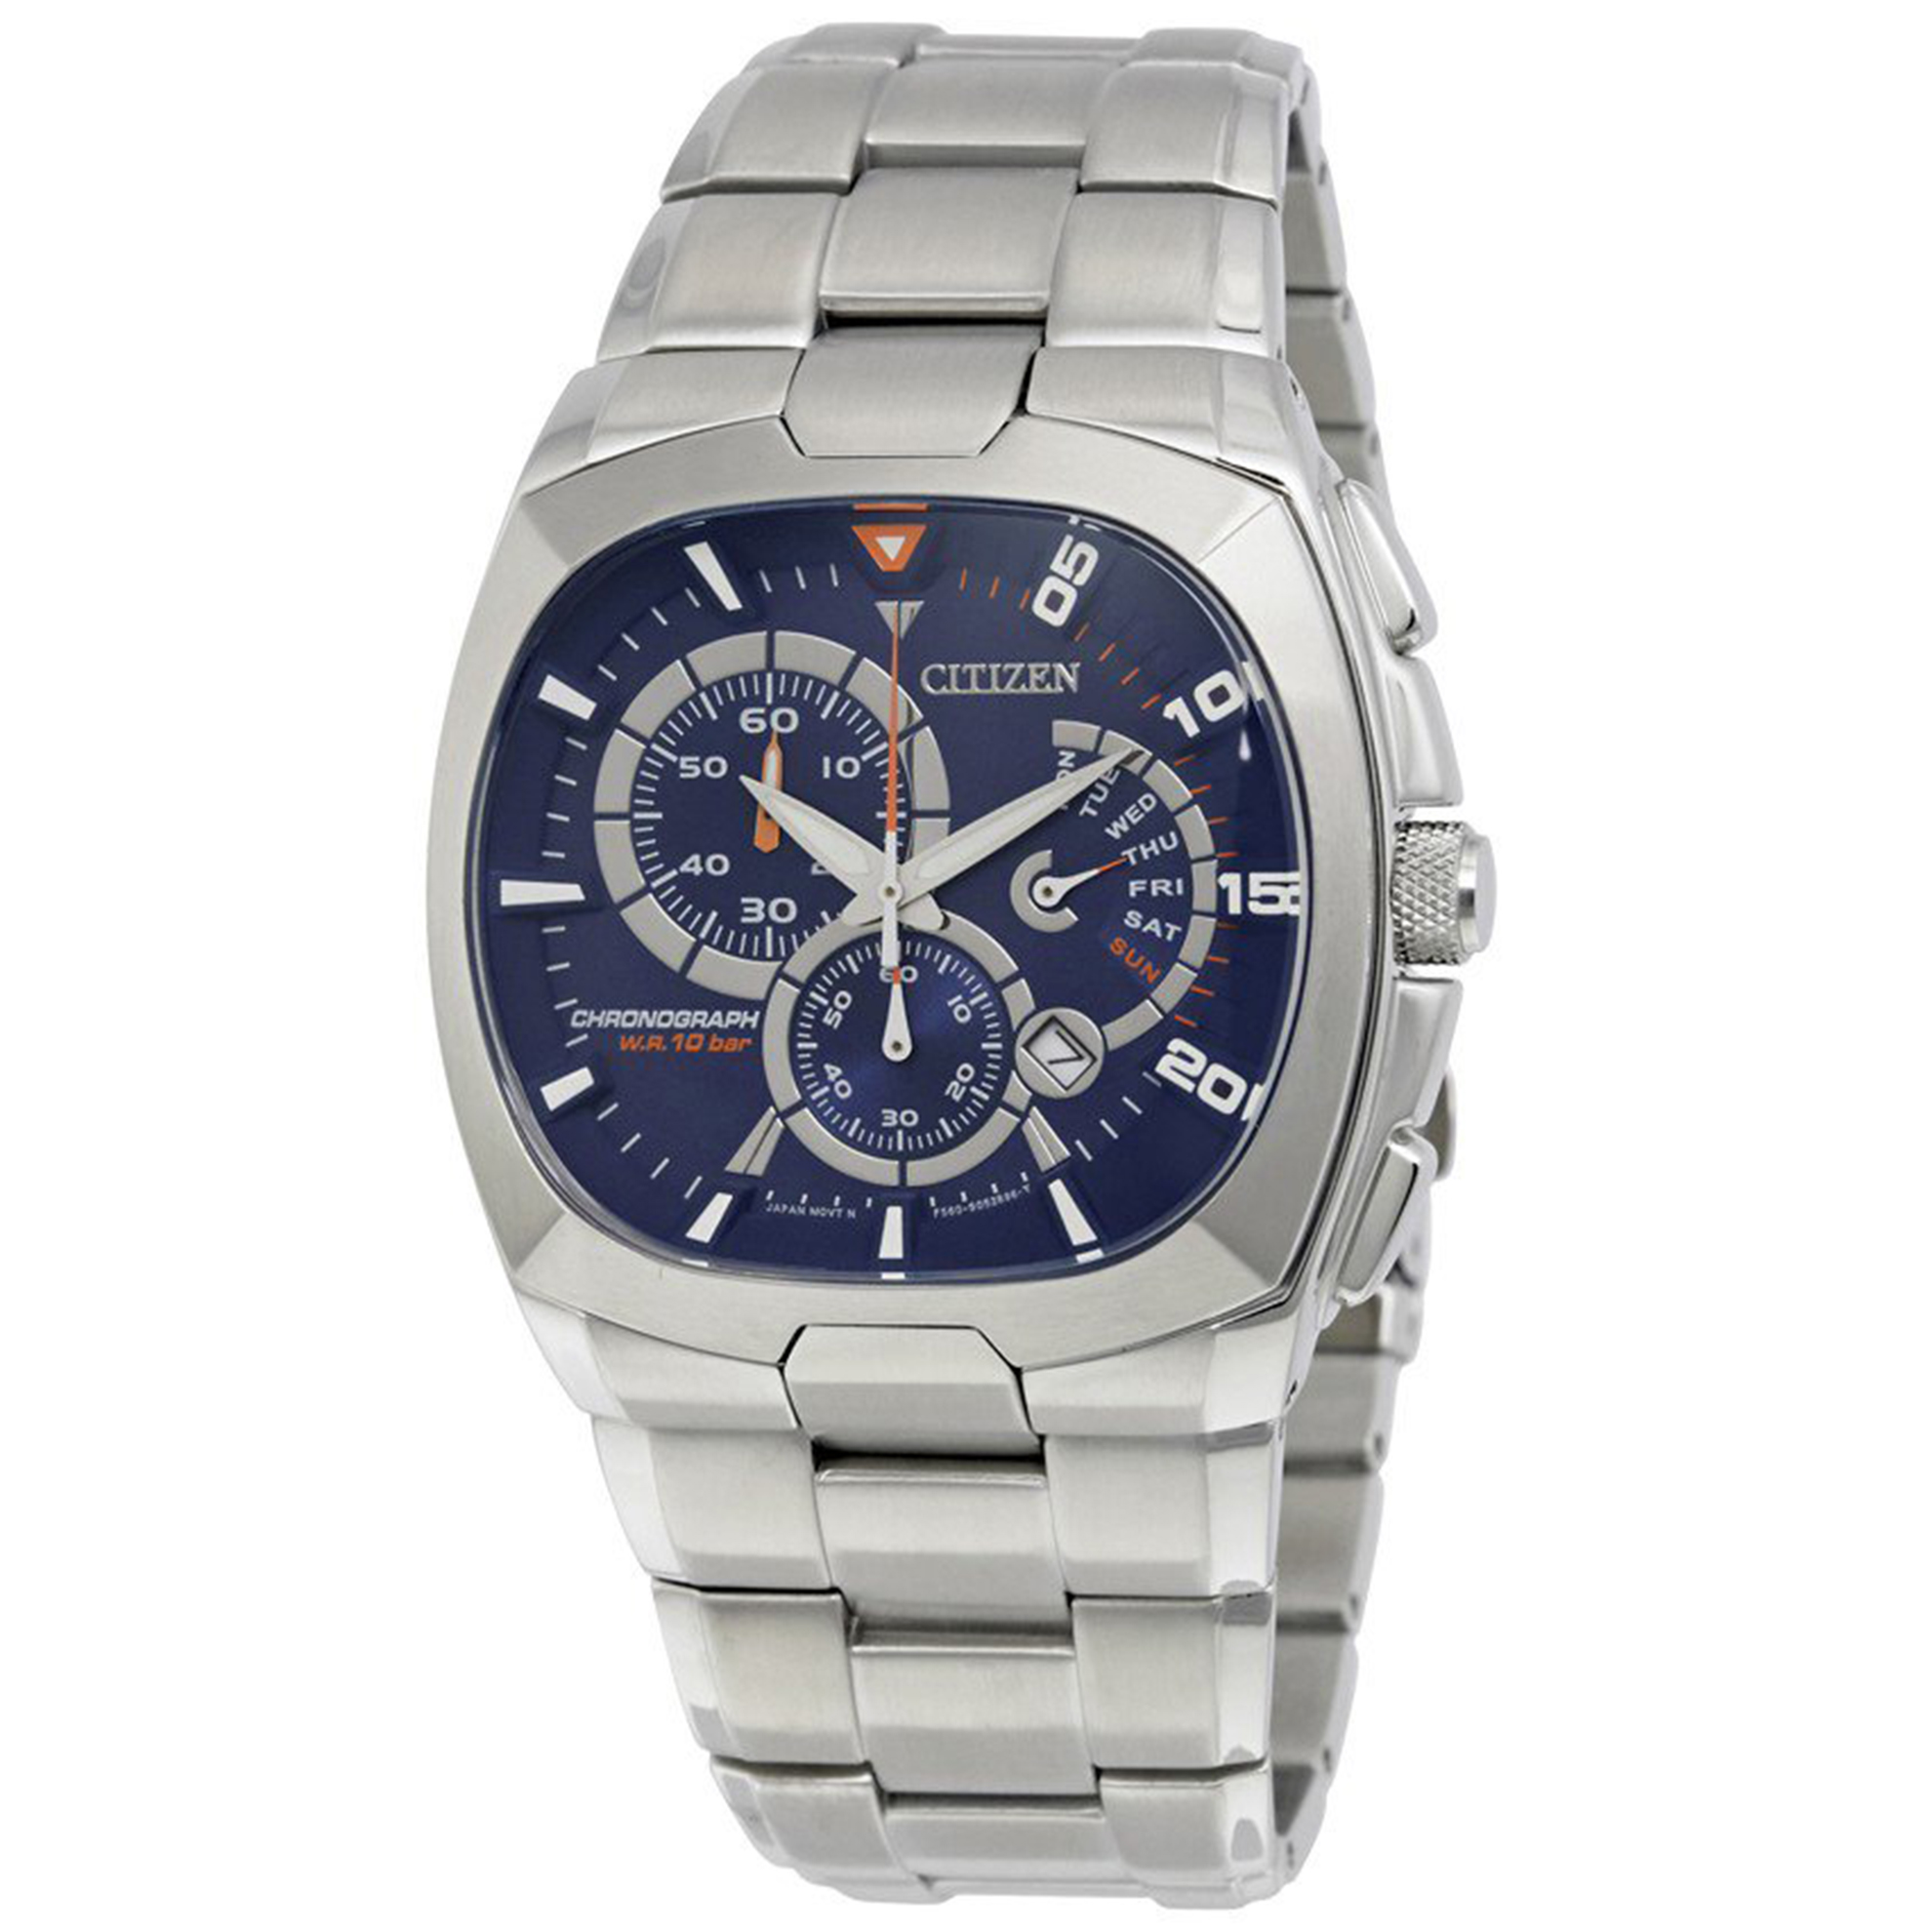 Citizen AN9000-53M Citizen Classic Day/Date Chronograph Blue DIal